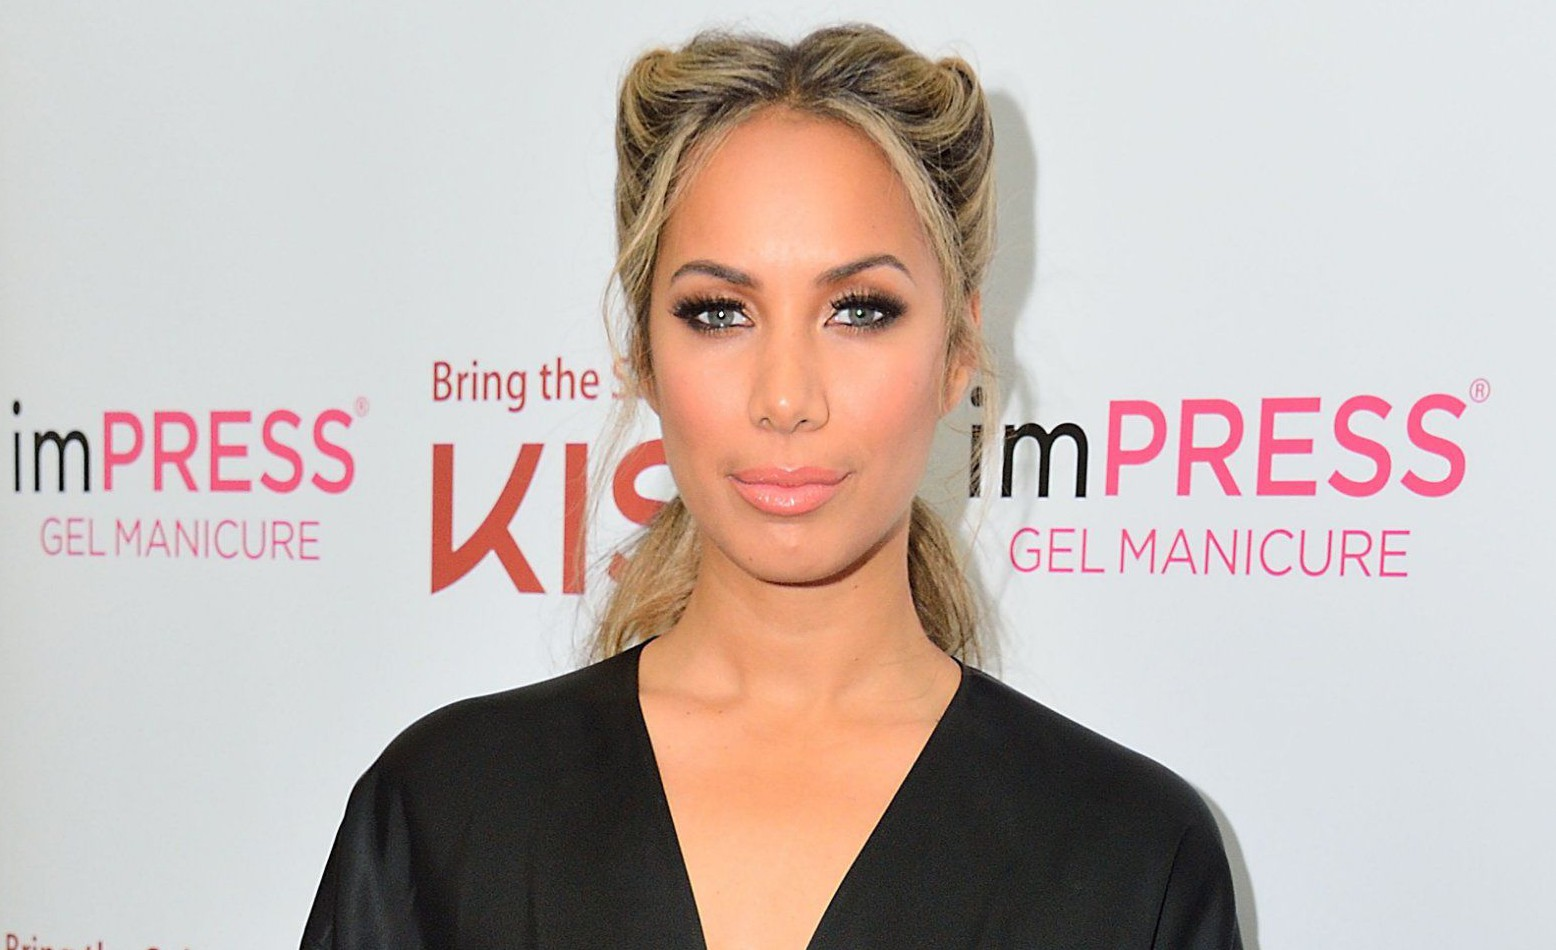 Leona Lewis is brand ambassador for ethical lashes and nails by KISS (Photo by Ray Tang/LNP/REX/Shutterstock)